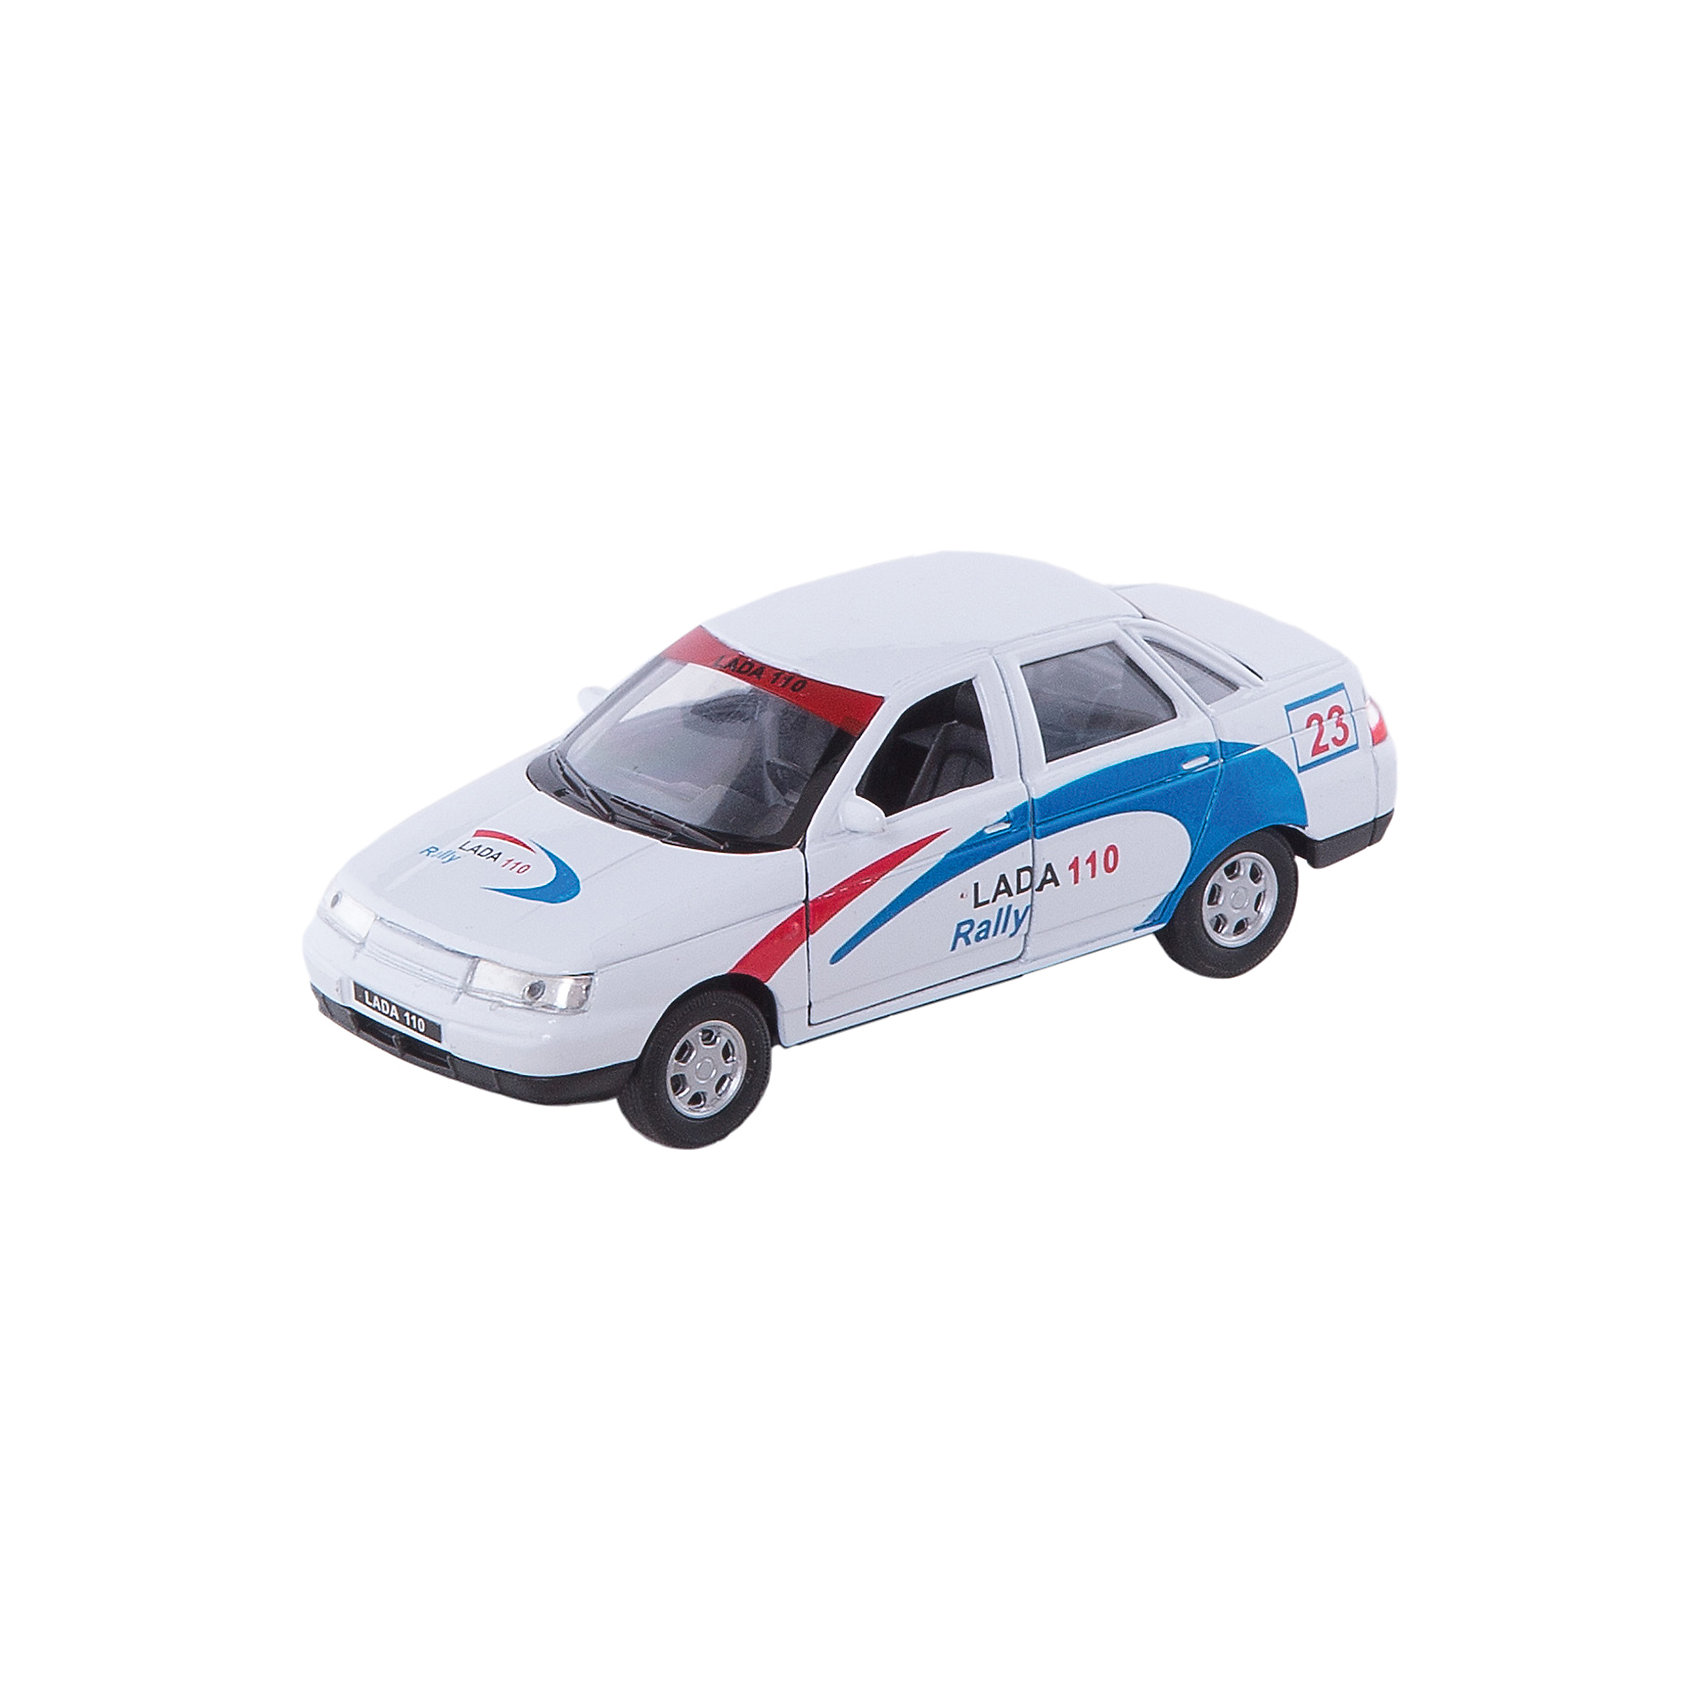 Welly Welly Модель машины 1:34-39 LADA 110 Rally автомобиль welly nissan gtr 1 34 39 белый 43632